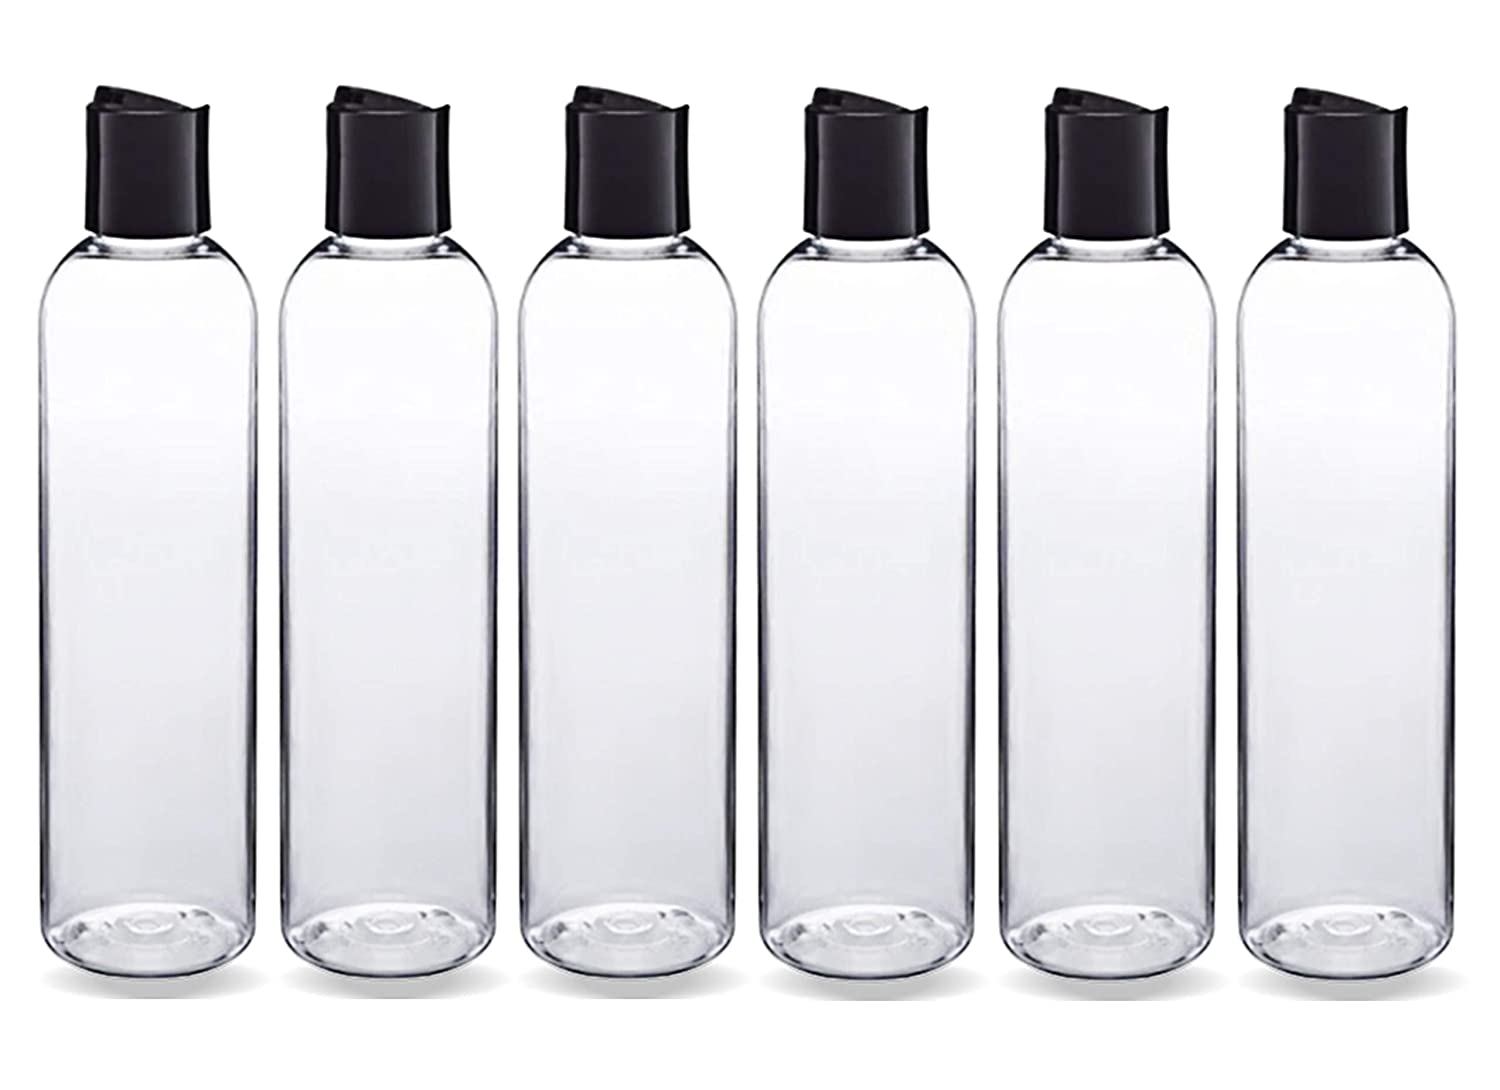 ljdeals 8 oz Clear Plastic Empty Bottles with Black Disc Top Caps, Refillable Containers for Shampoo, Lotions, Cream and more Pack of 6, BPA Free, Made in USA